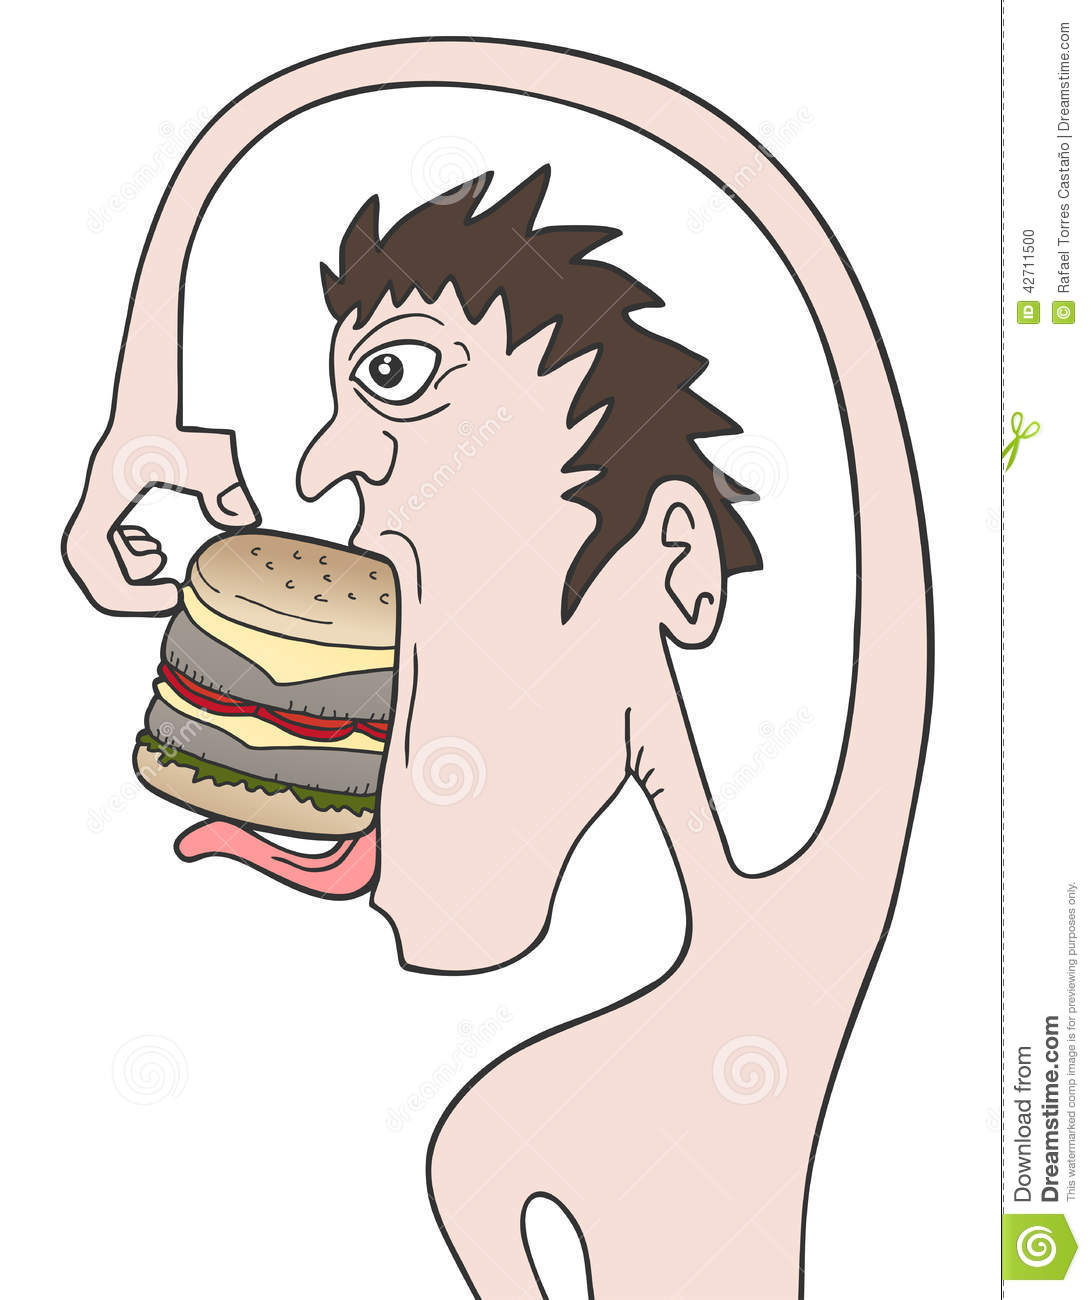 Mangez l hamburger